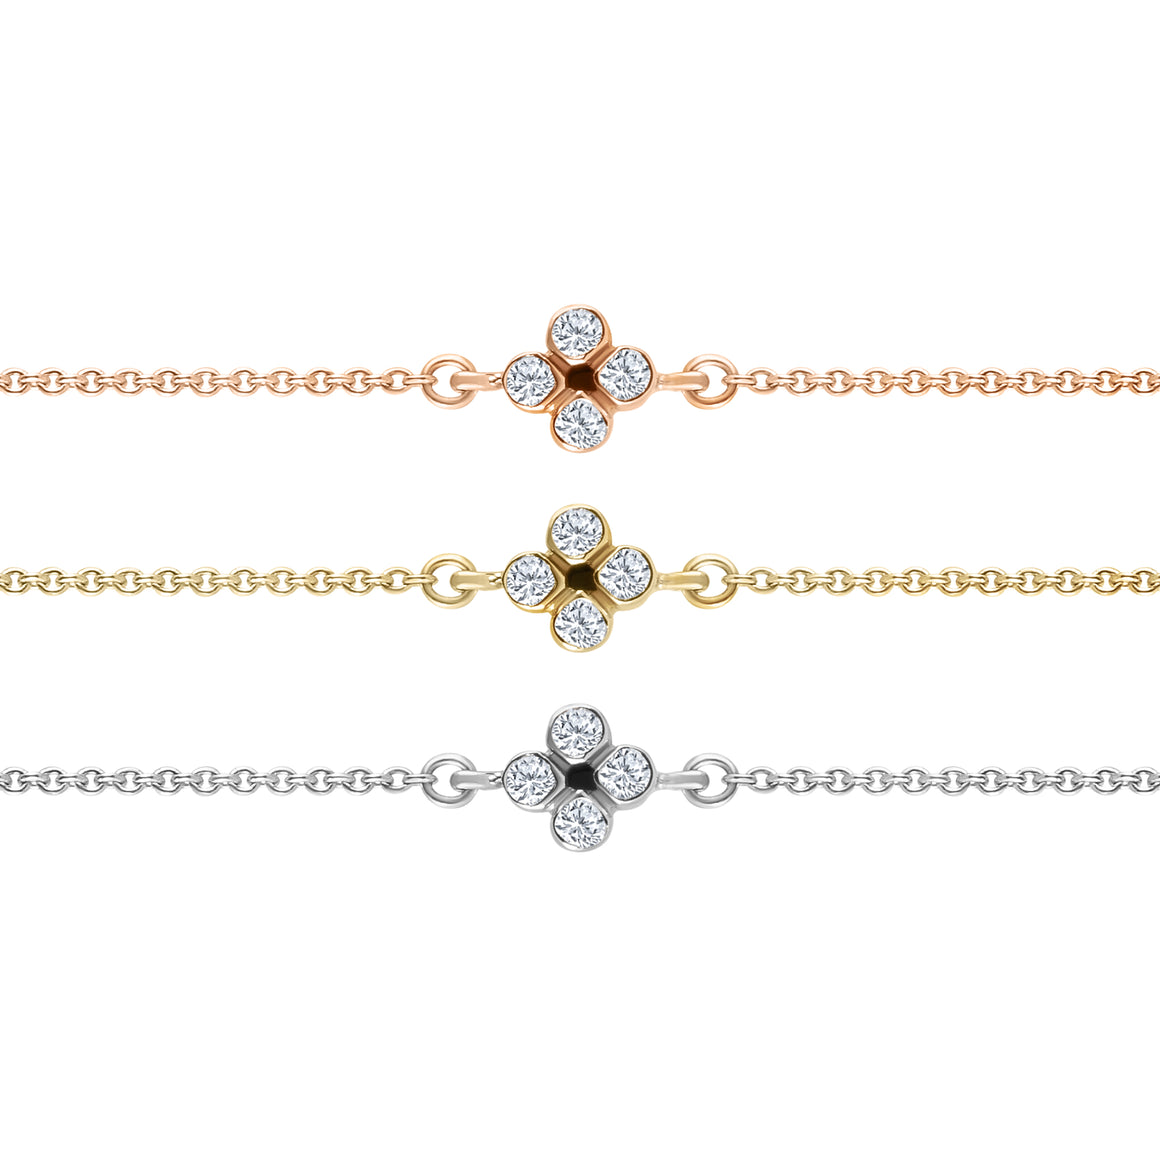 FOUR LEAF DIAMOND CLOVER BRACELET